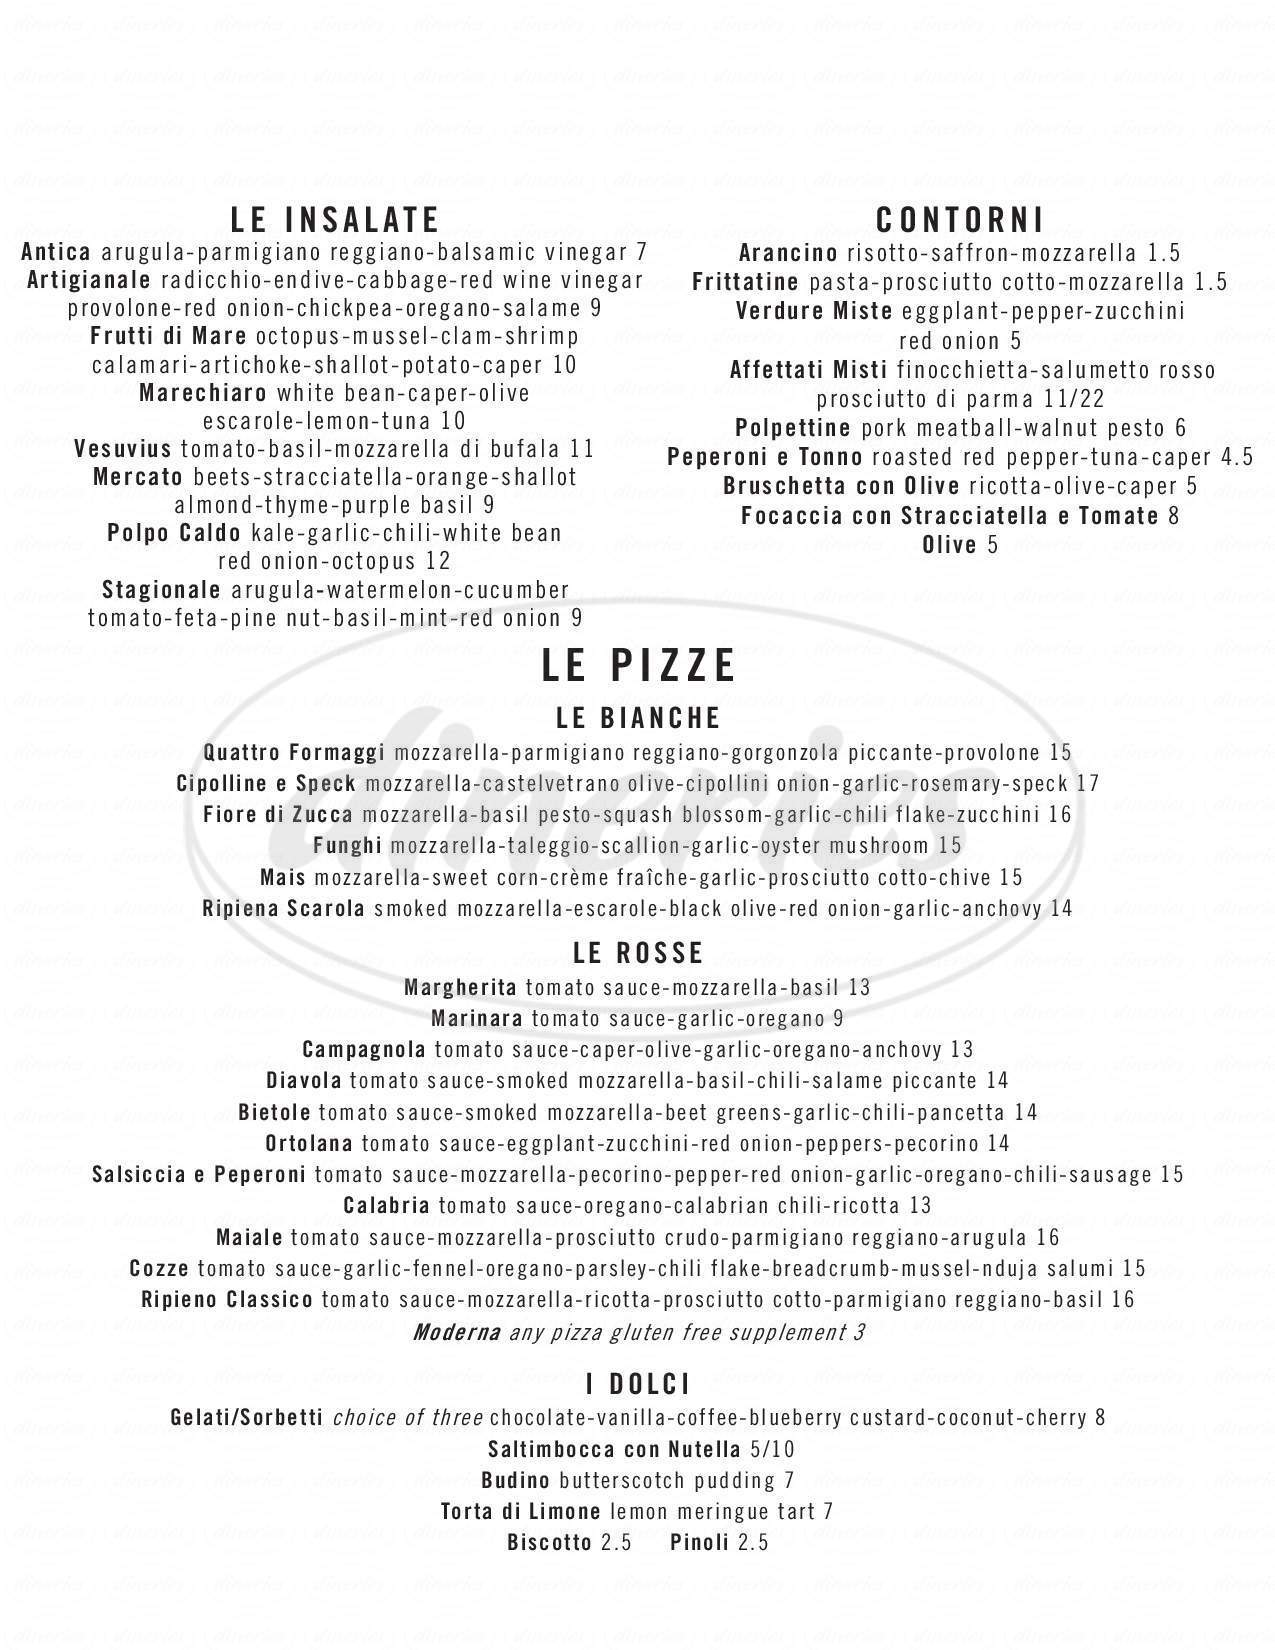 menu for Pizzeria Locale